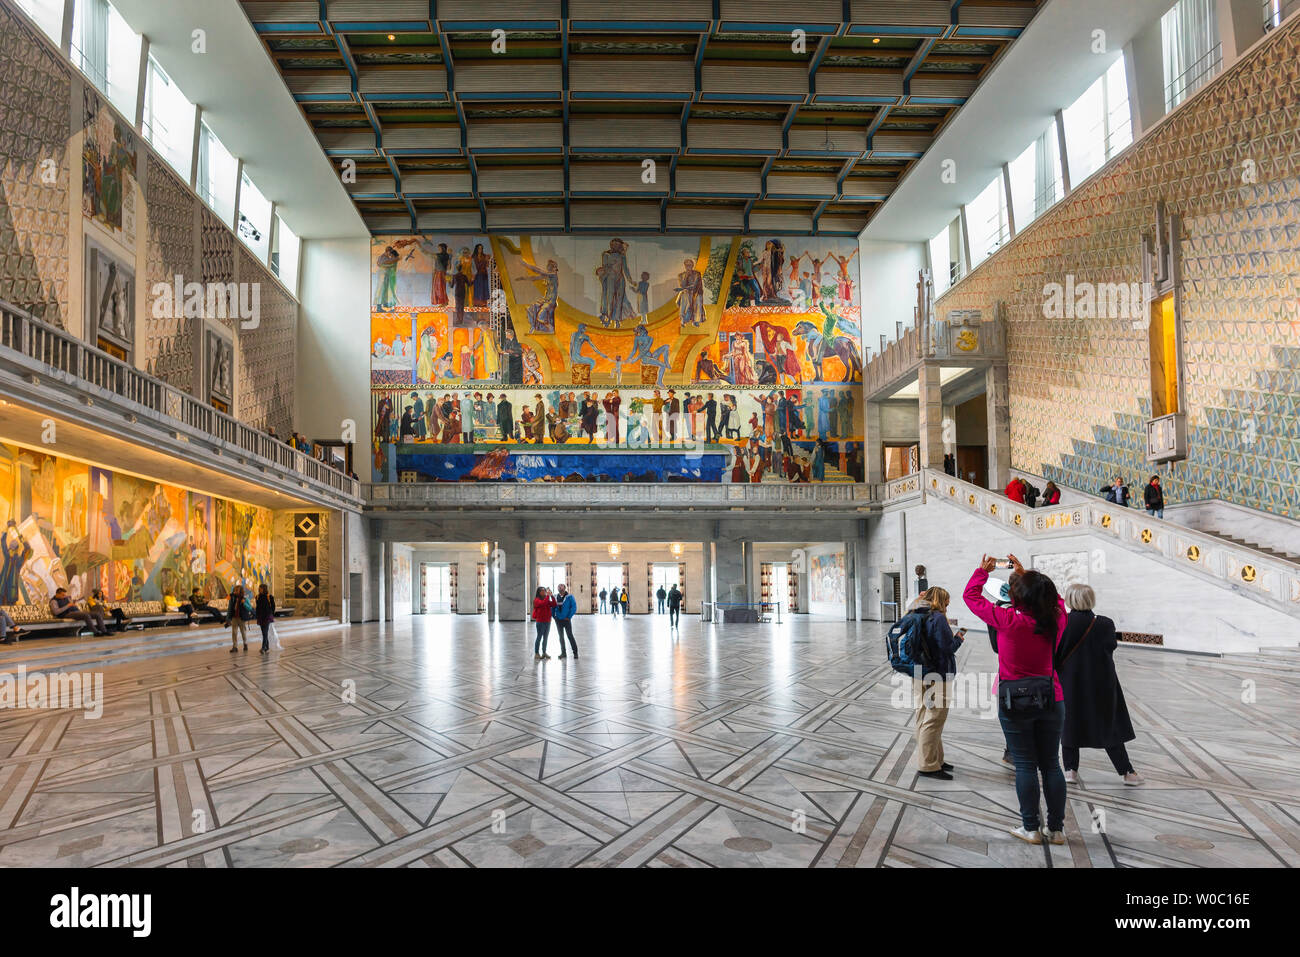 Oslo City Hall, rear view of a young woman taking a photo of the Henrik Sorensen painting inside the Great Hall in Oslo City Hall (Radhus), Norway. Stock Photo